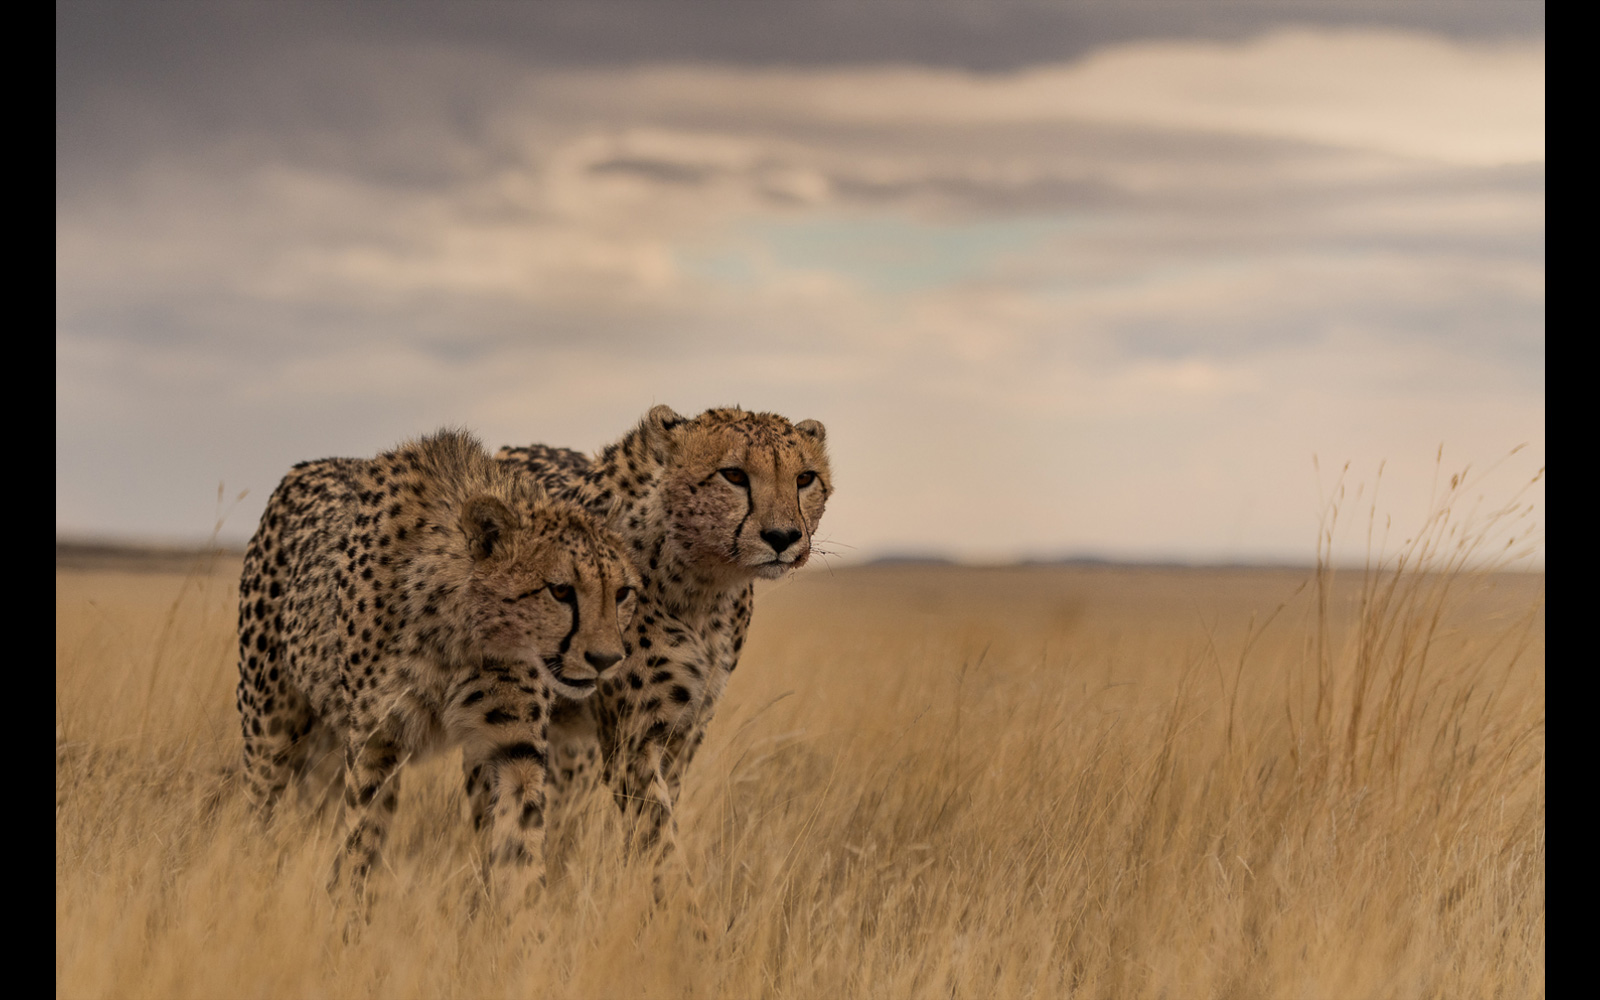 Cheetahs walk shoulder-to-shoulder in the early morning light in Tiger Canyons, South Africa © Marc de Chalain